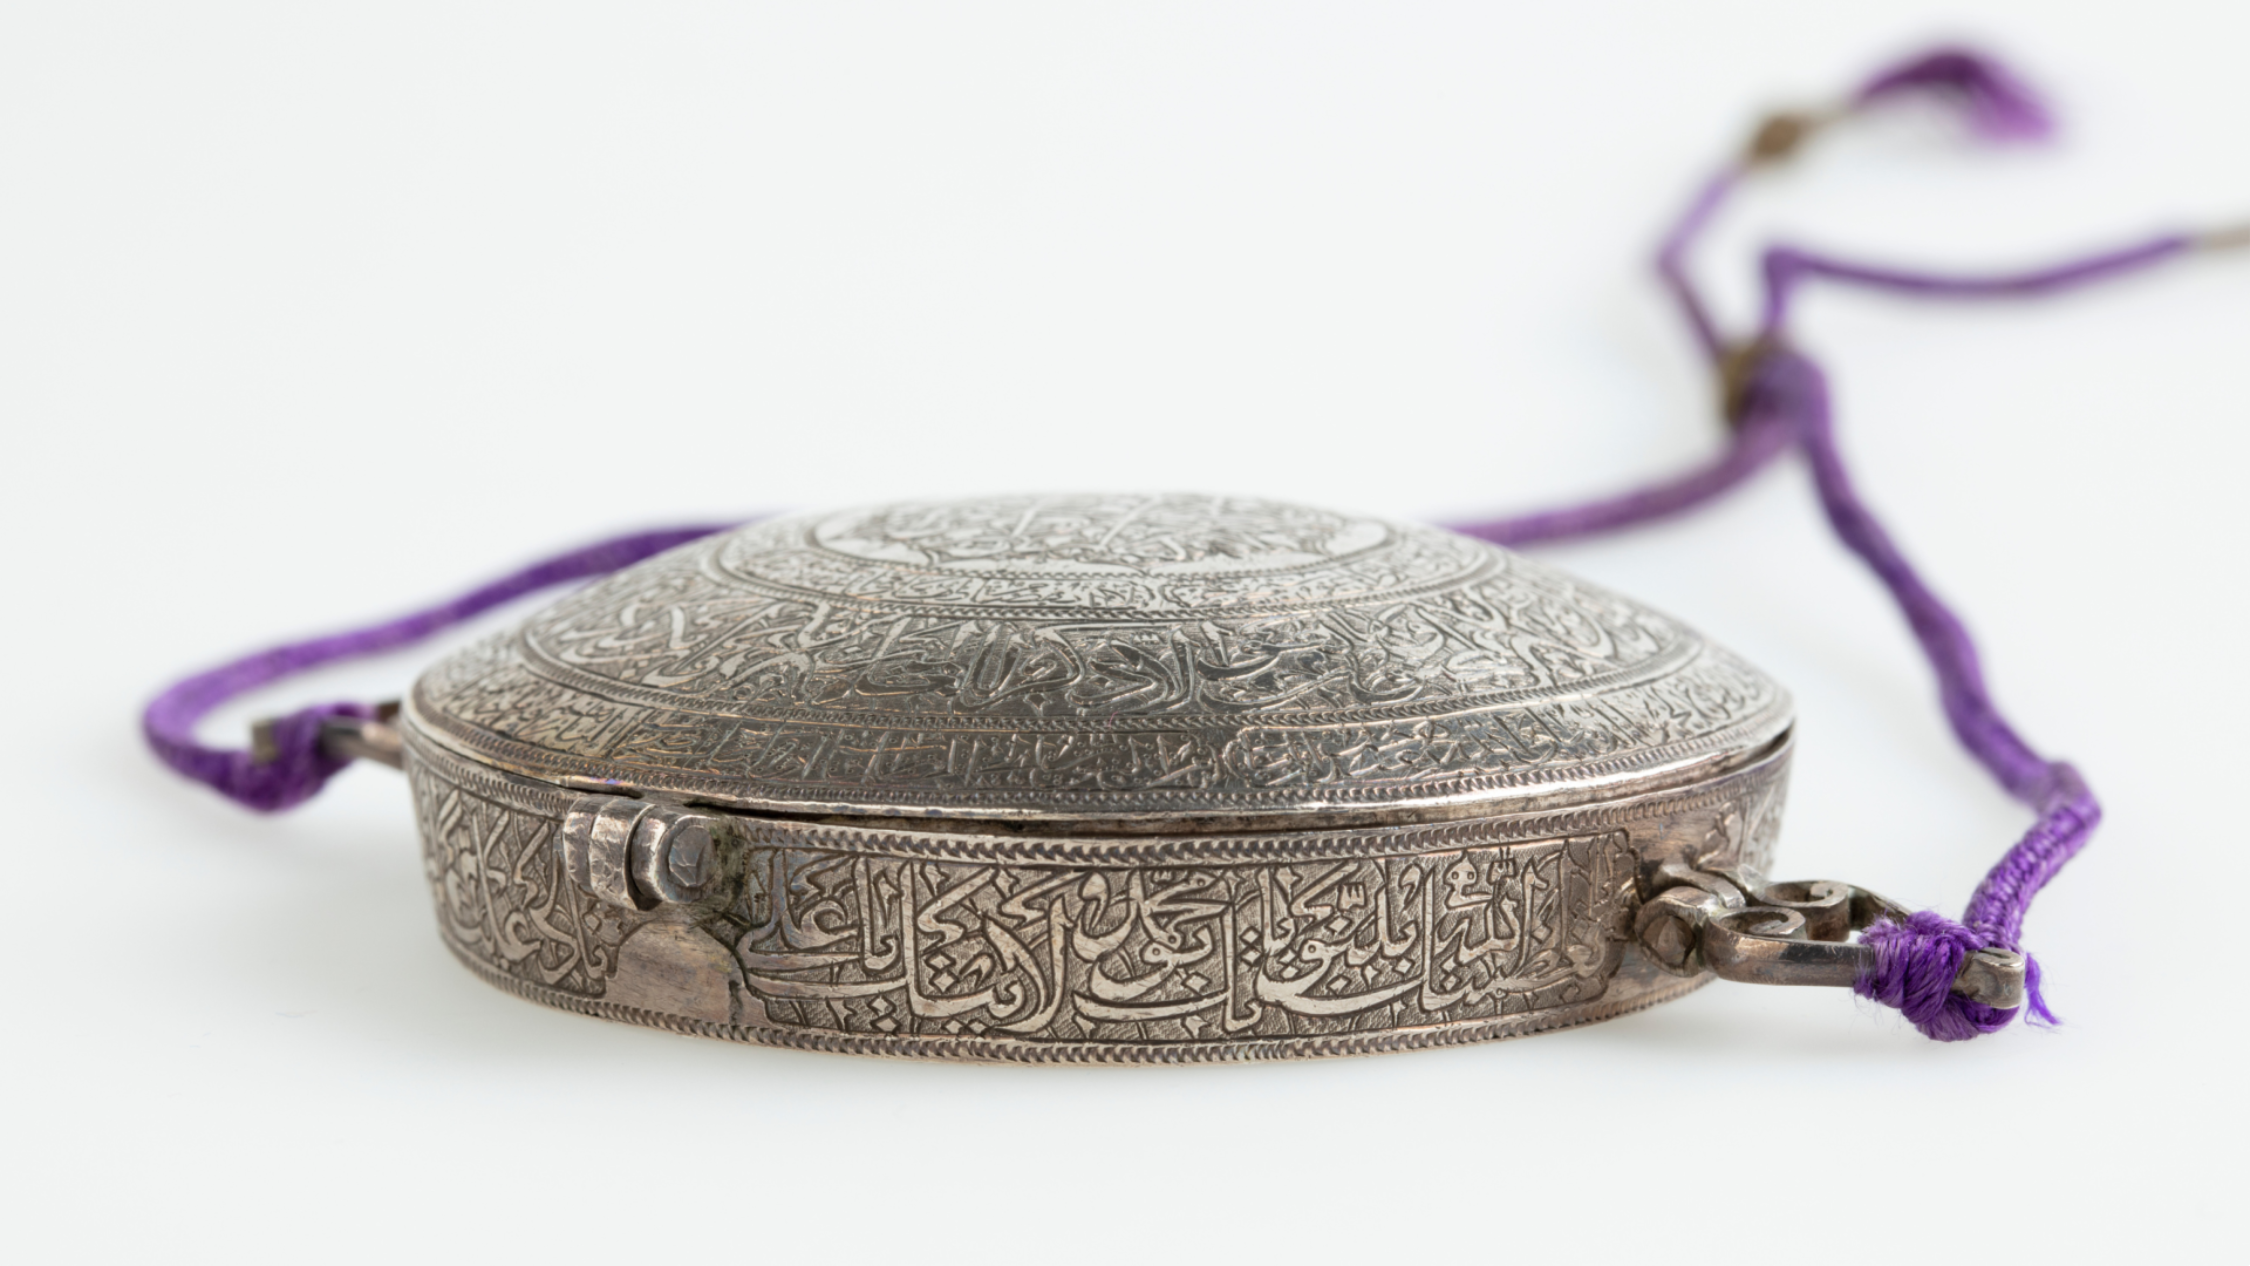 A silver, engraved war amulet on purple thread from 1800s Persia